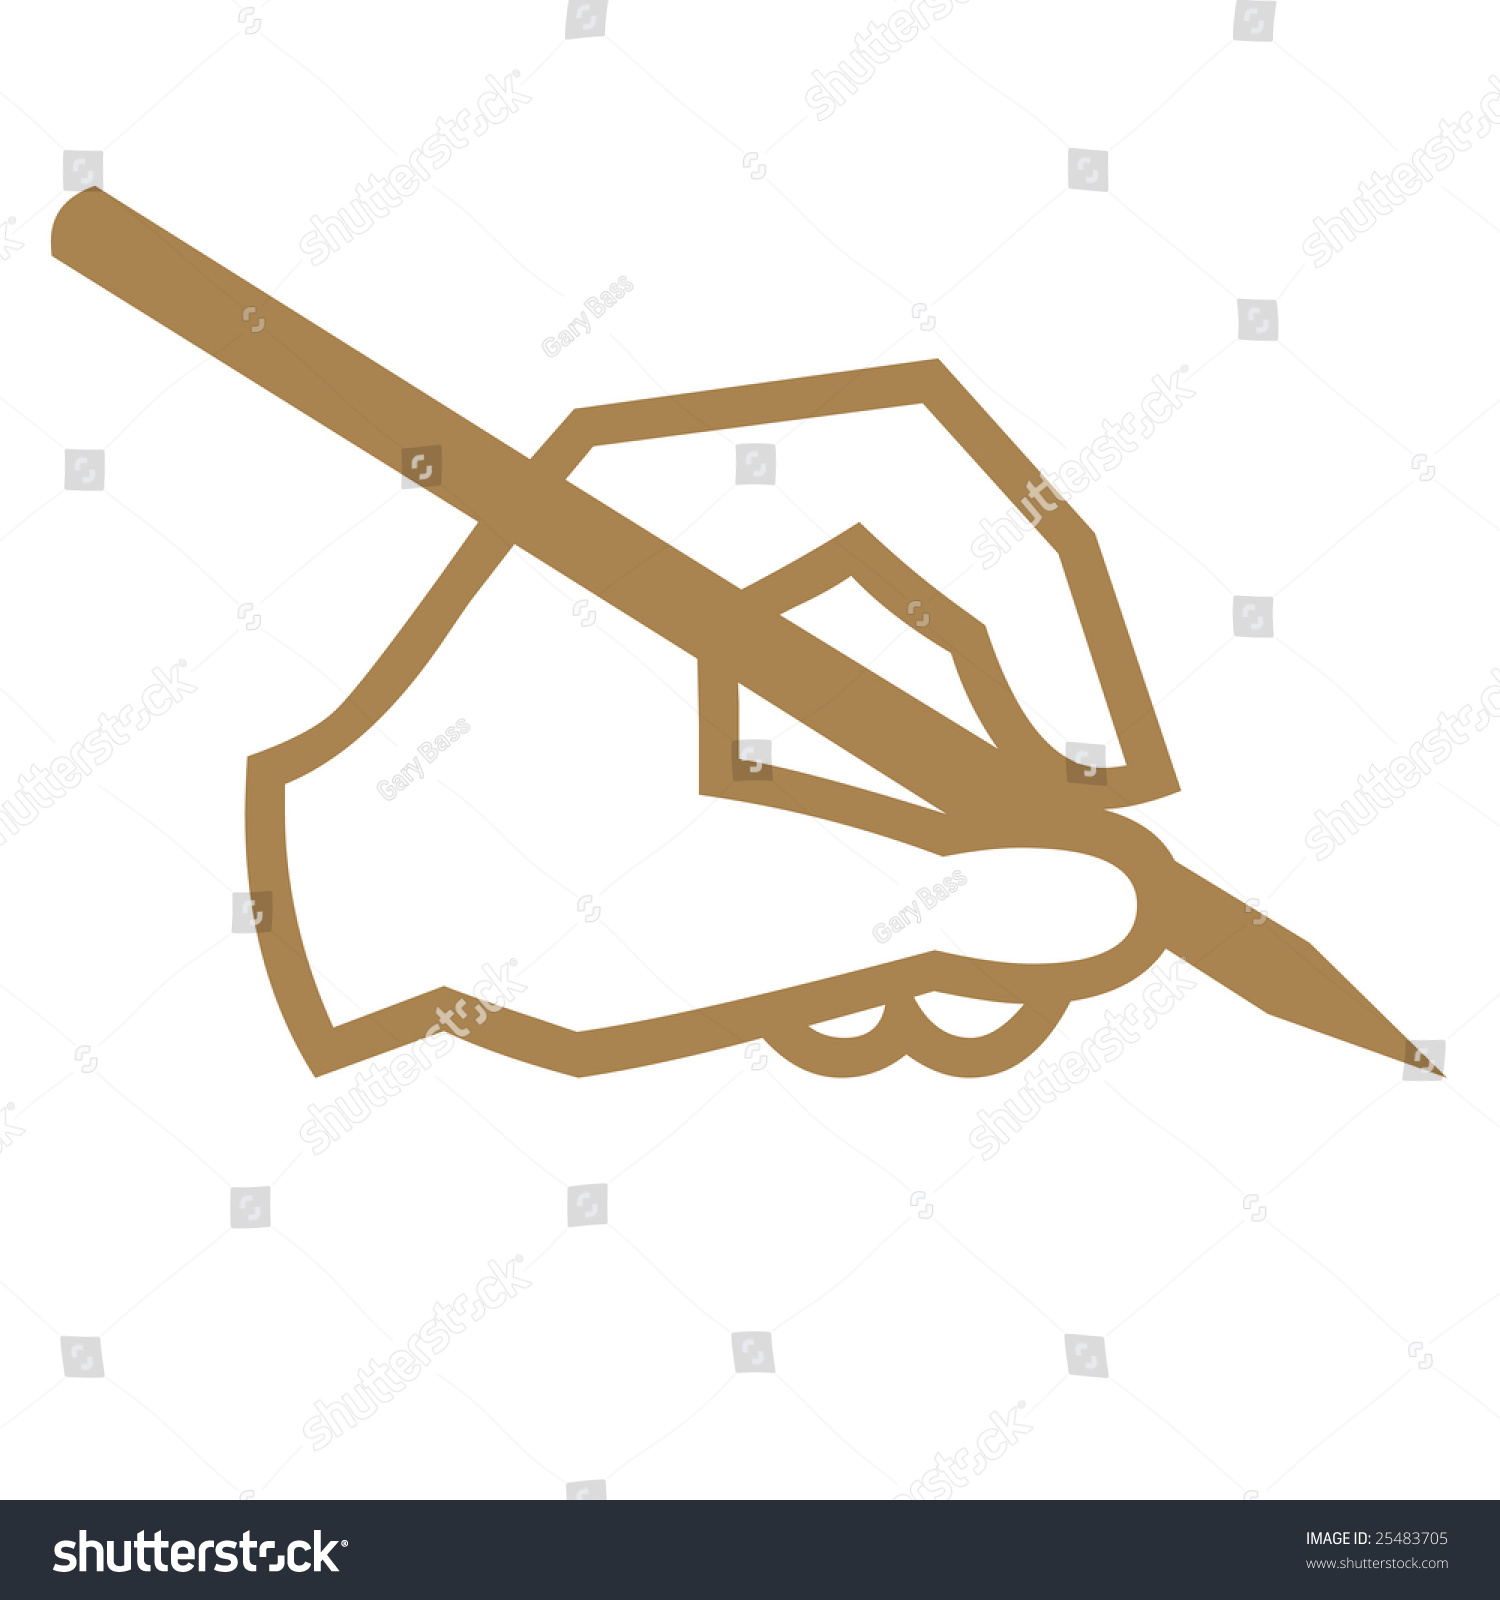 artist symbol stock photo 25483705 shutterstock